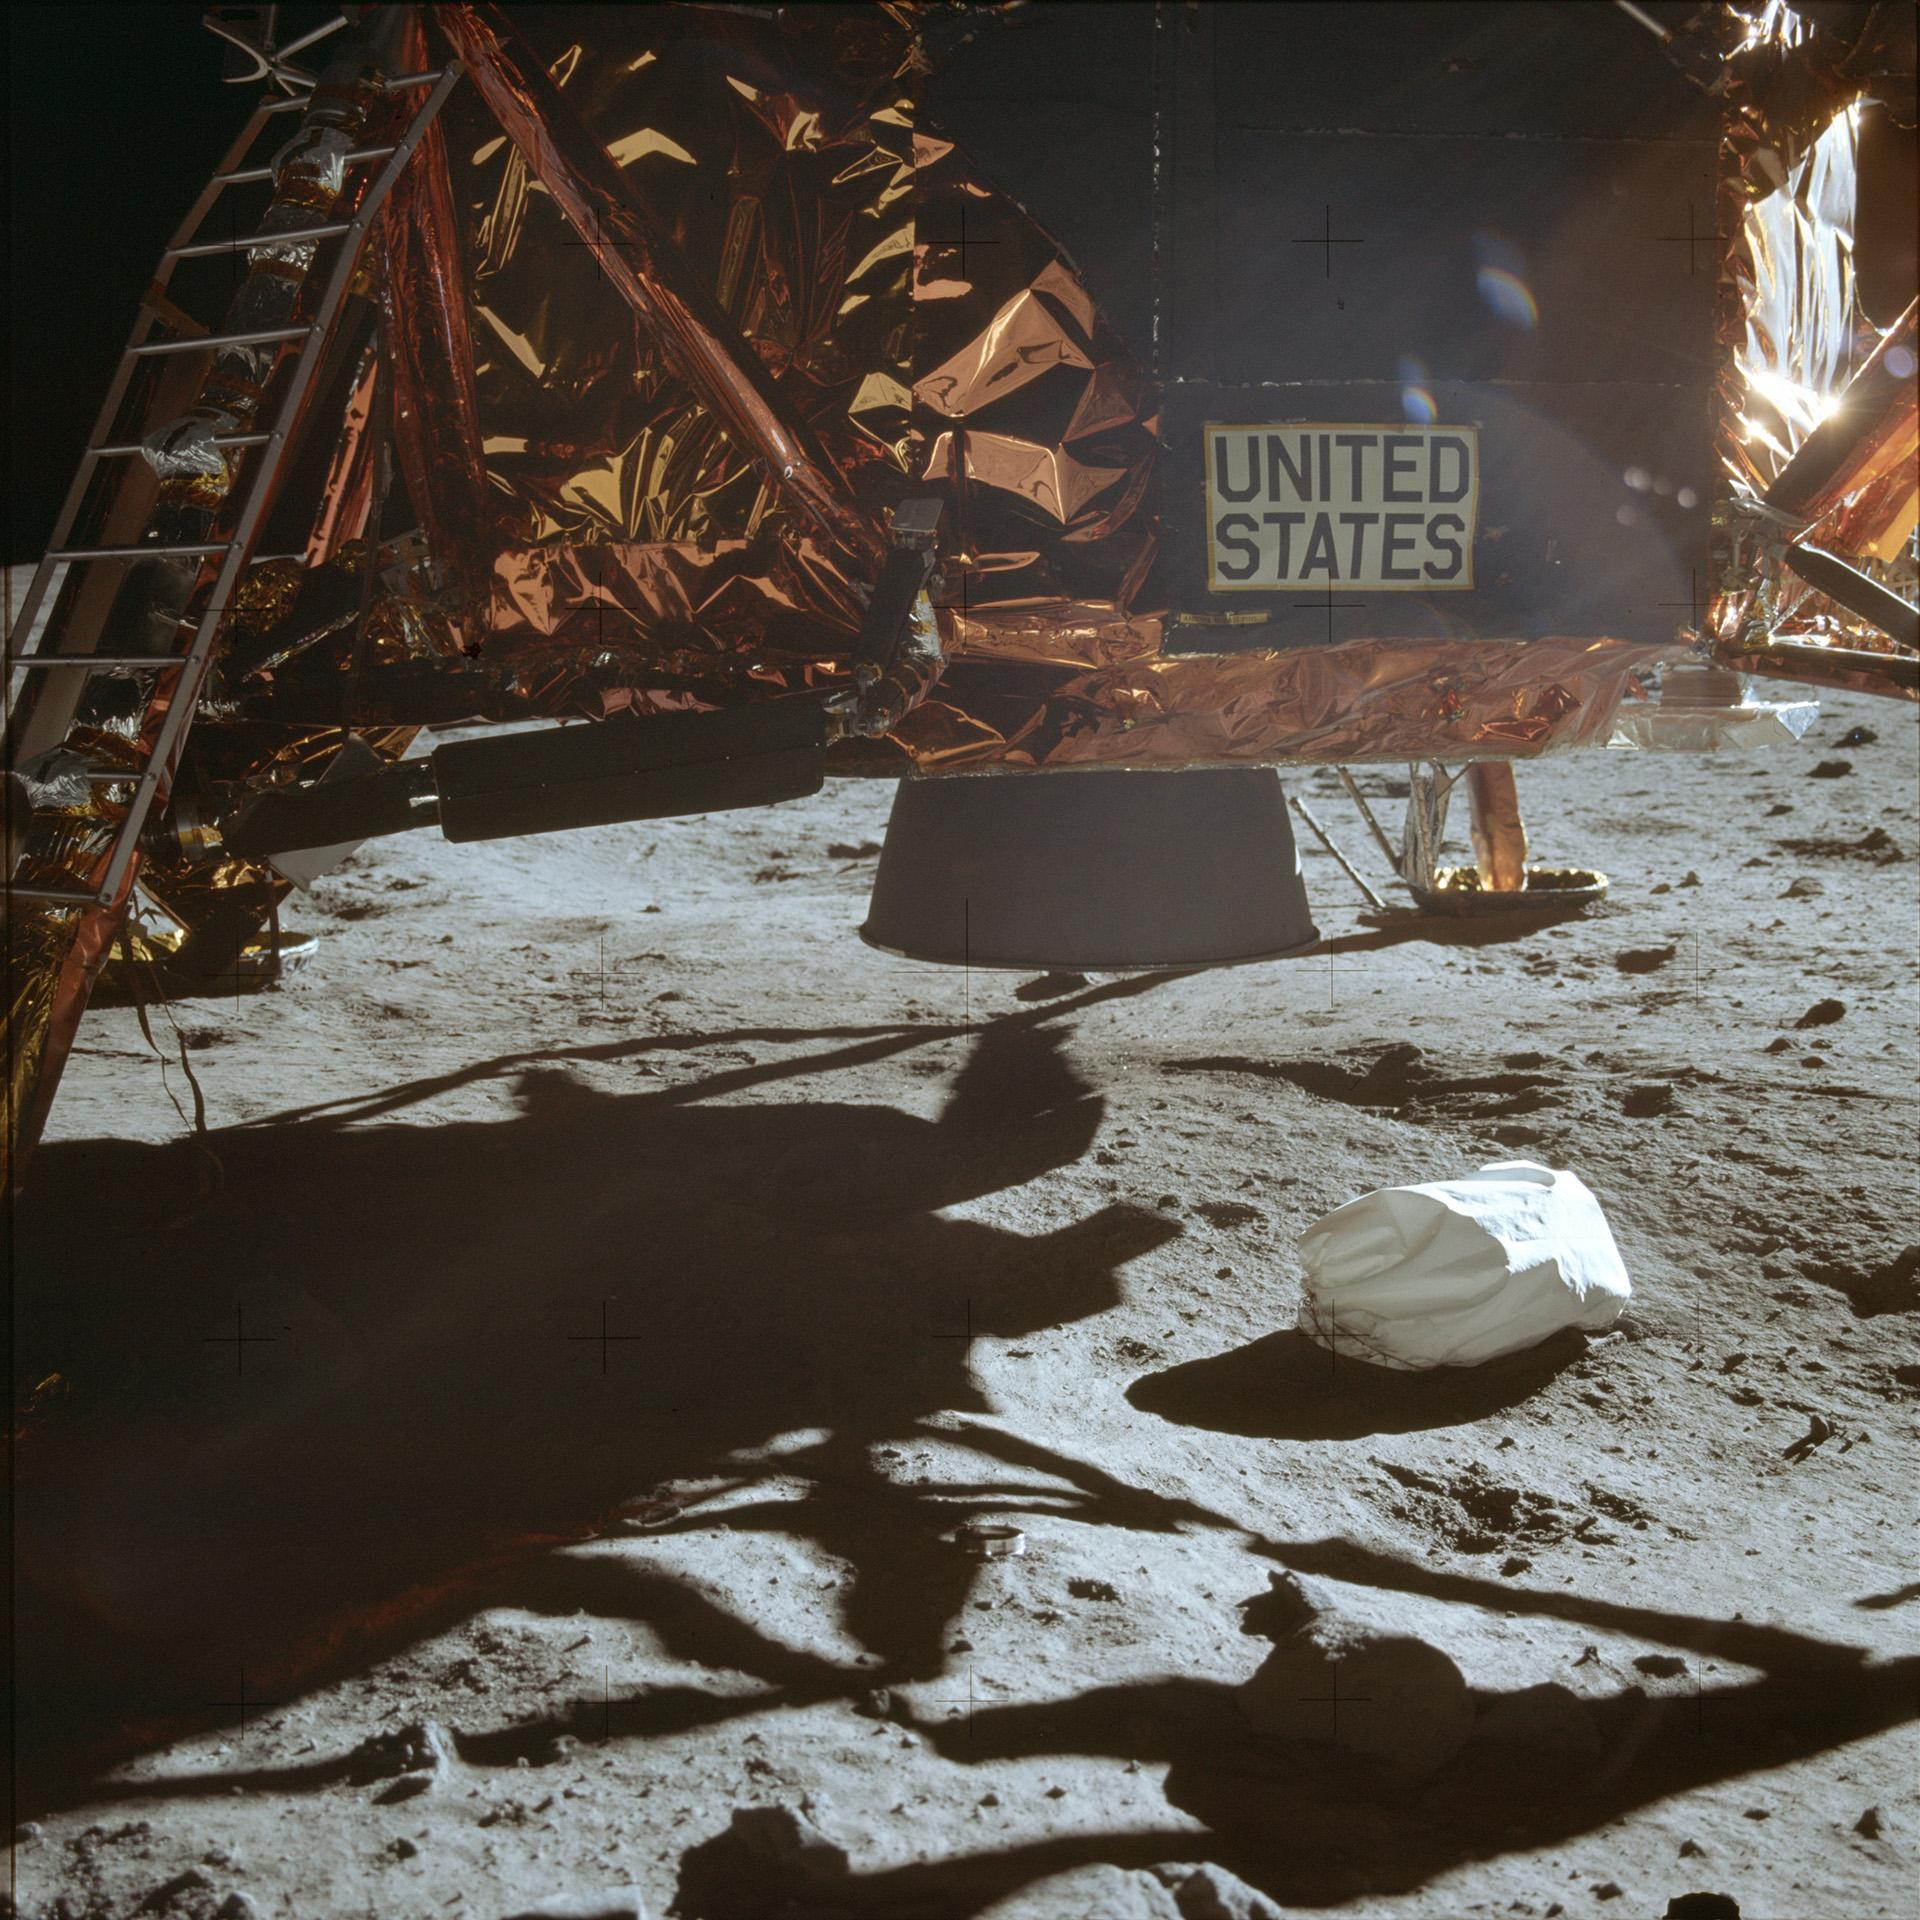 This July 20, 1969 photo made available by NASA shows the Lunar Module descent stage and area of soil beneath. (NASA via AP)